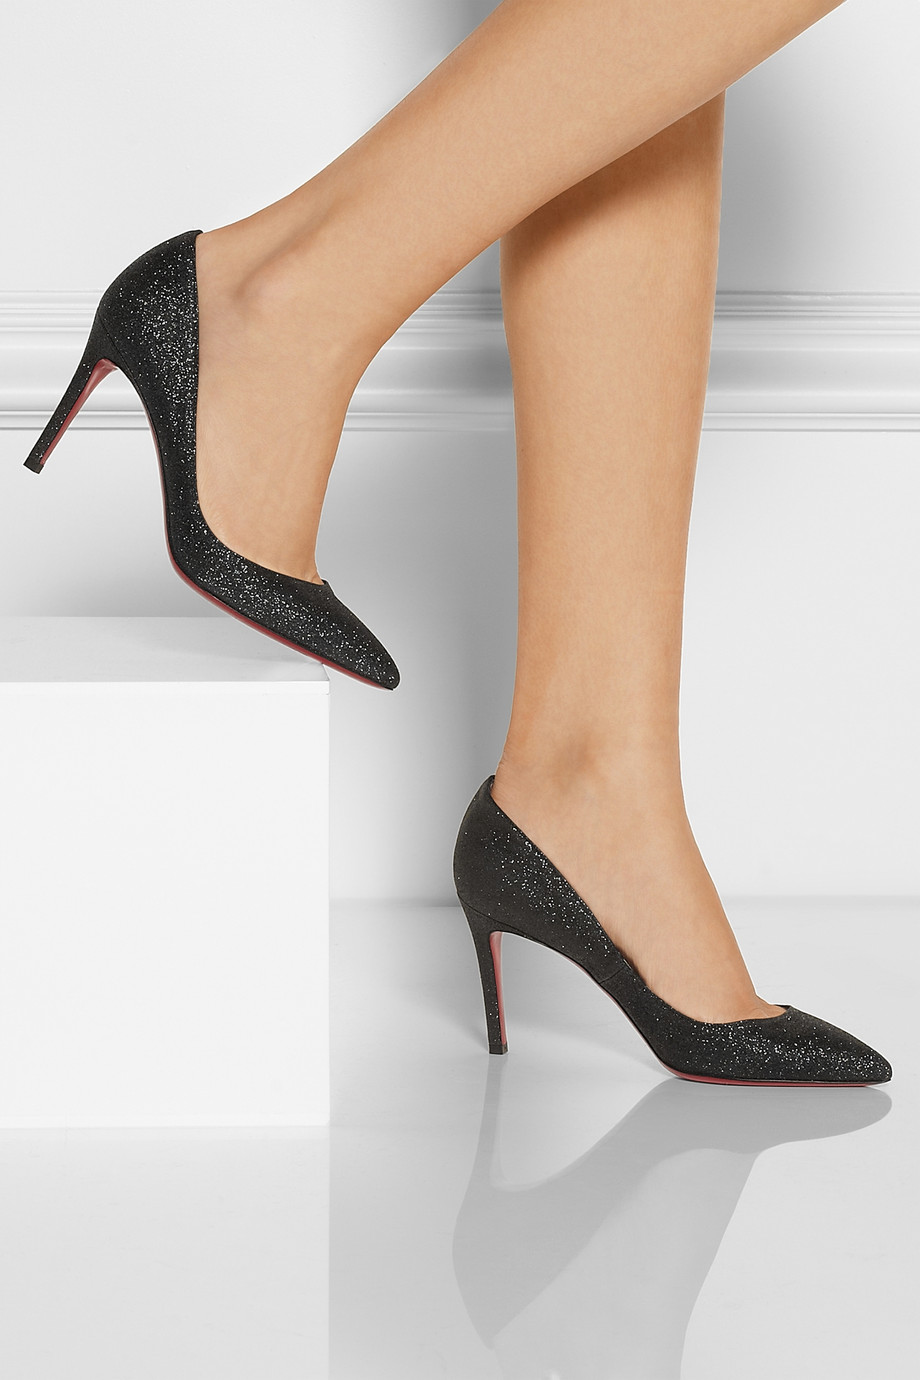 517edd51c78a Christian Louboutin The Pigalle 85 Glittered Pumps in Black - Lyst